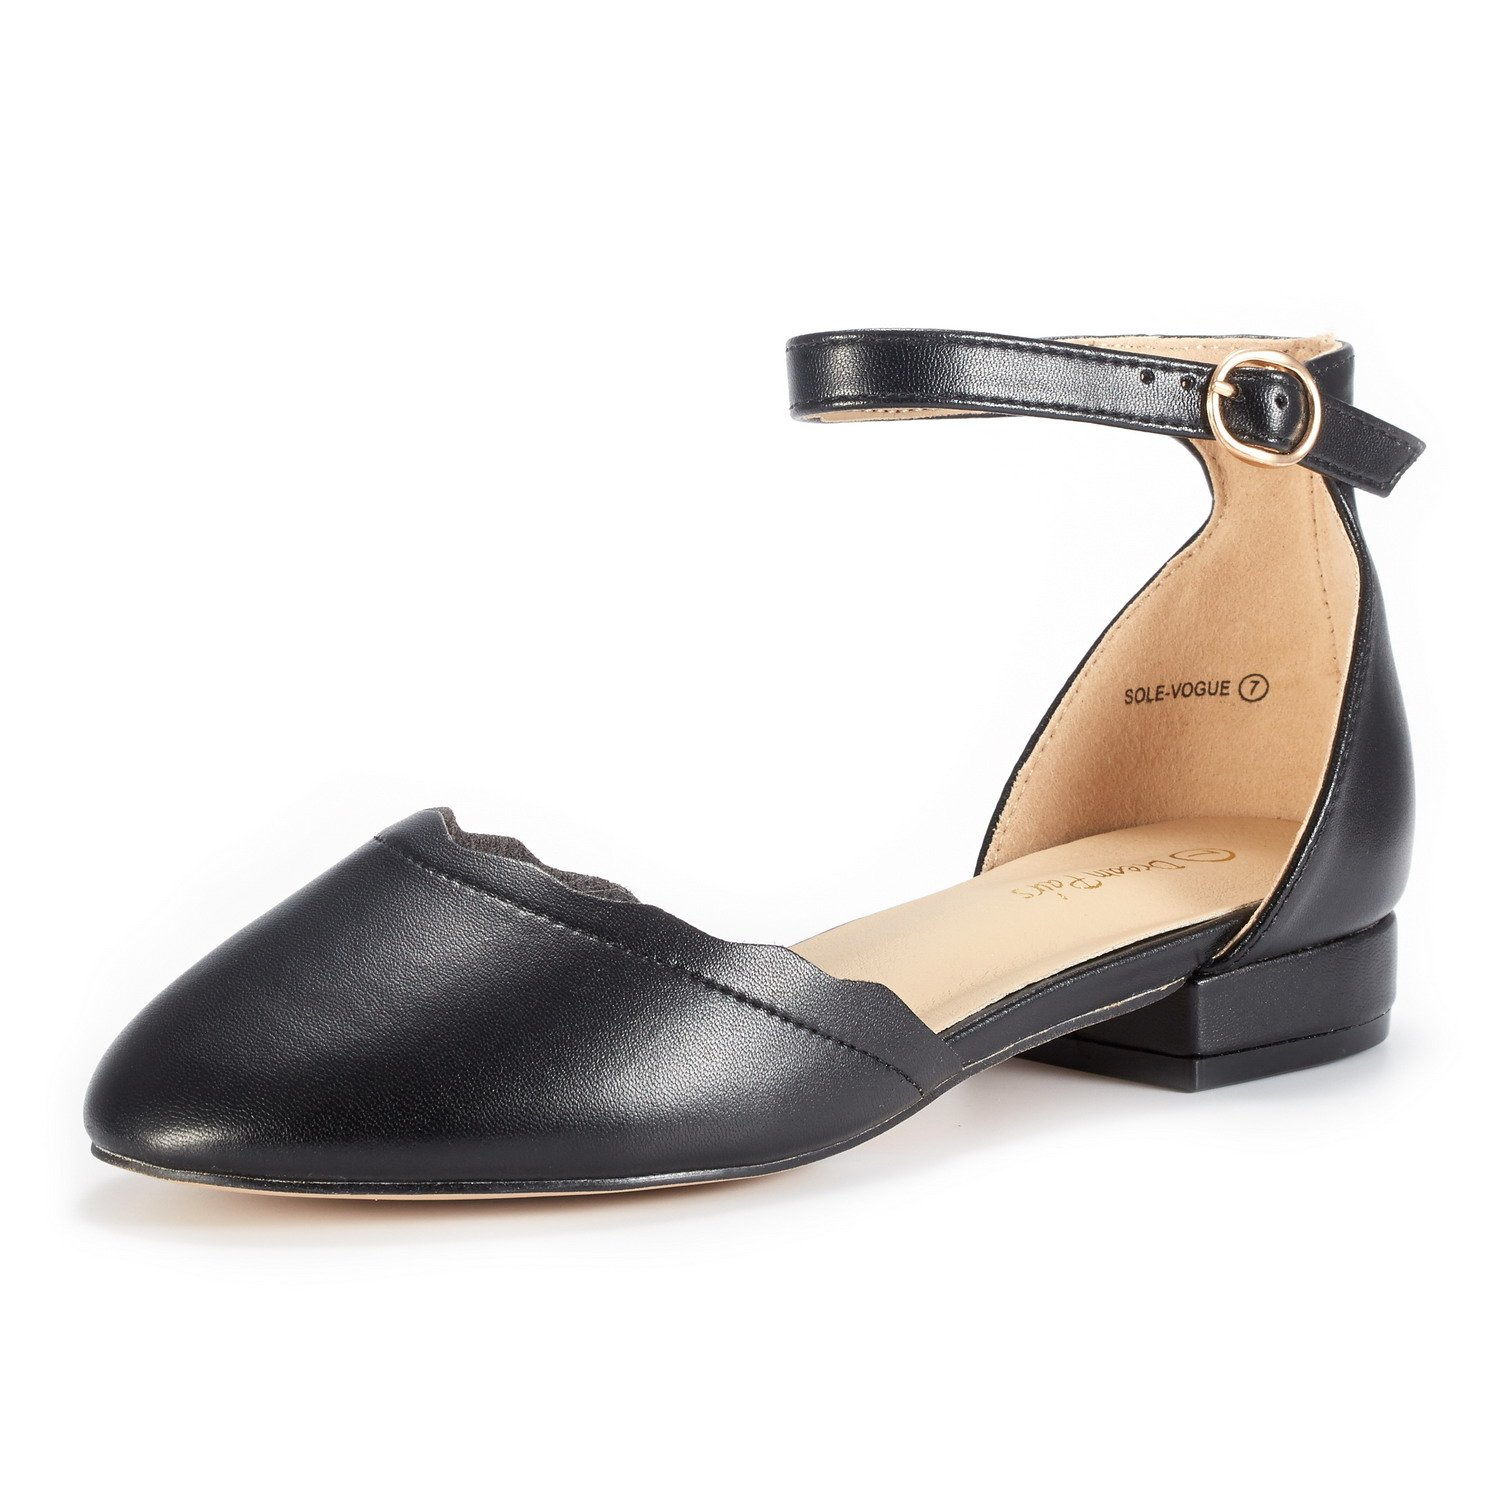 DREAM PAIRS Women's Sole_Vogue Black/PU Fashion Low Stacked Ankle Straps Flats Shoes Size 10 M US